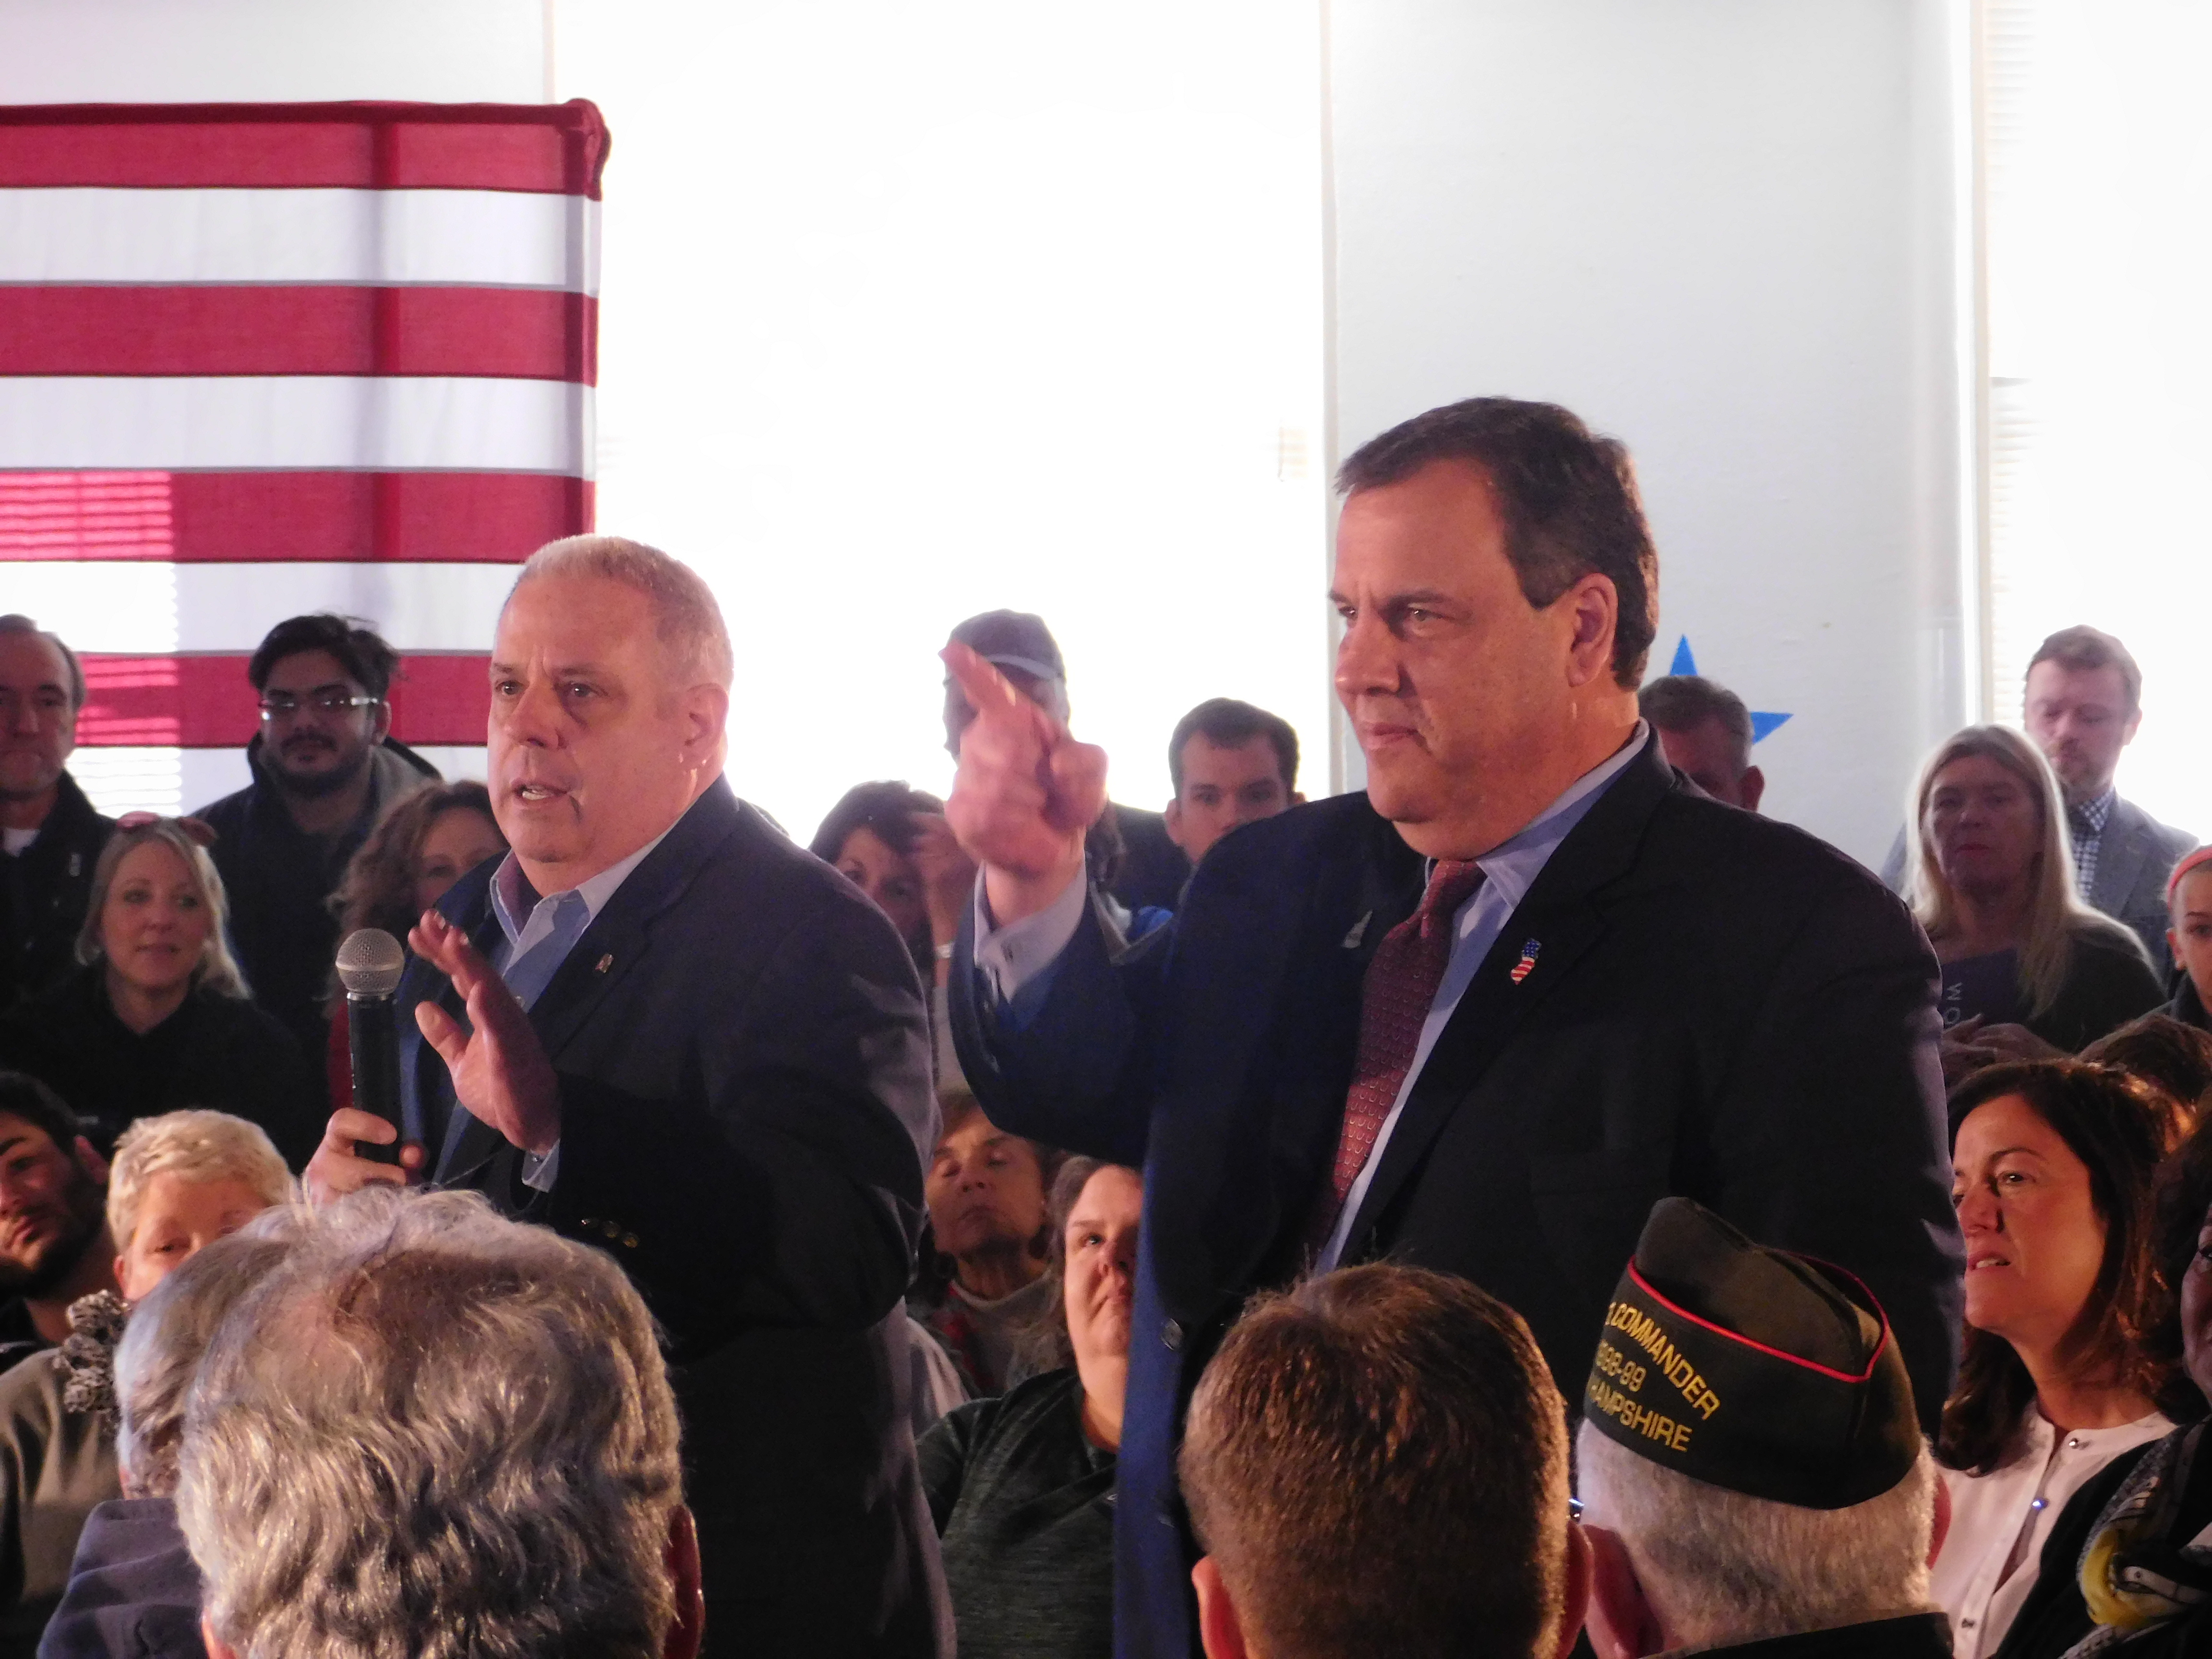 Maryland Governor Larry Hogan and New Jersey Governor Chris Christie at a NH town hall.